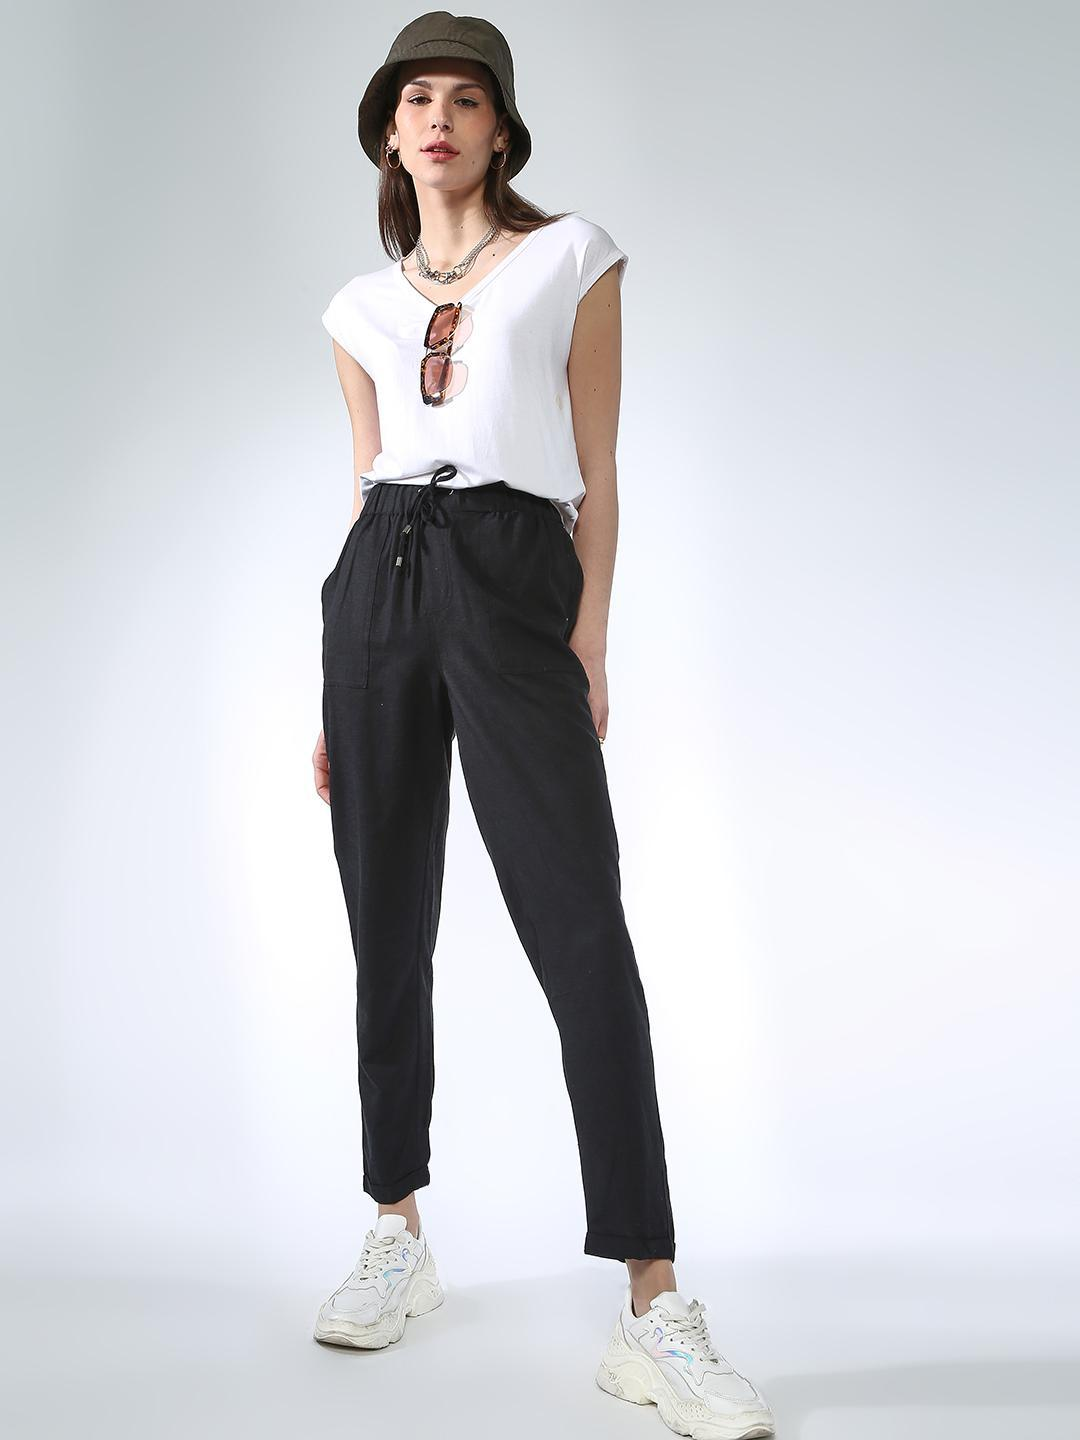 Oxolloxo Black Tie-Knot Basic Trousers 1